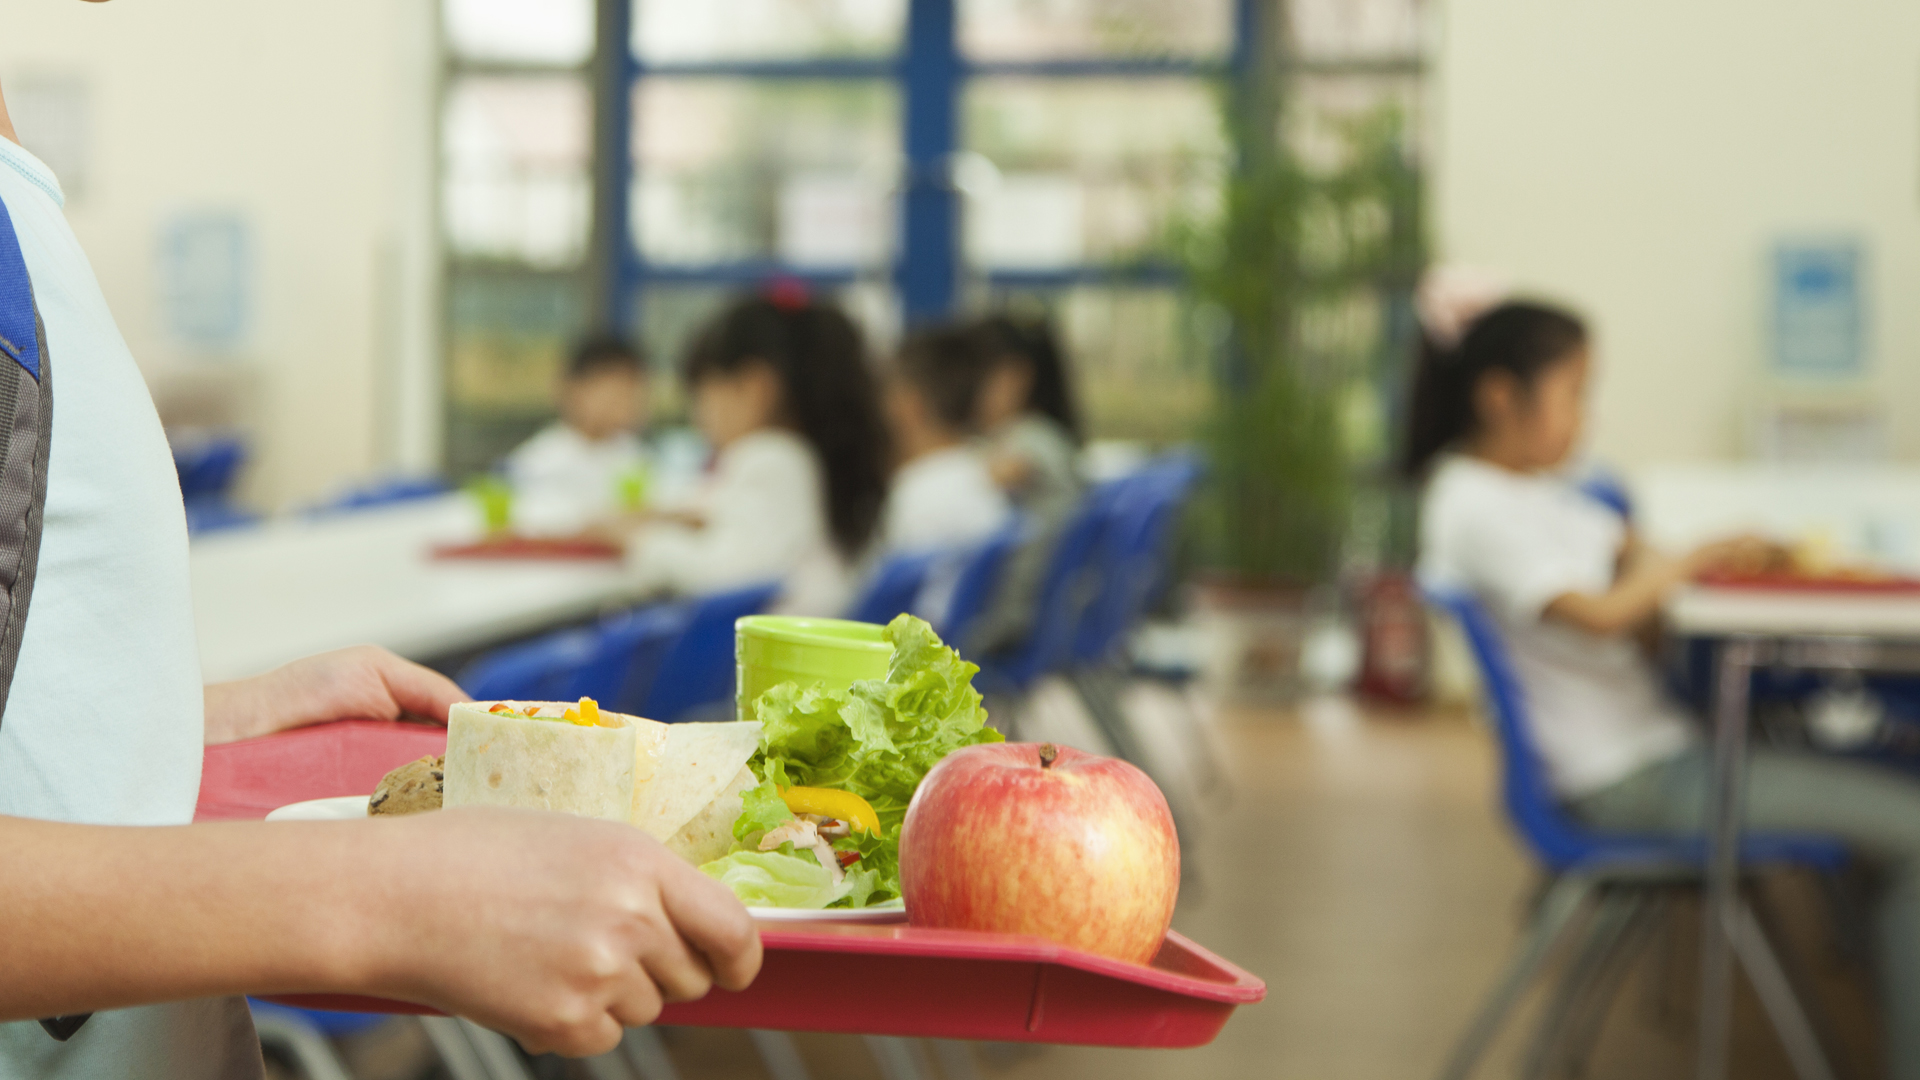 A student hold a lunch tray at a school cafeteria in this file photo. (Credit: iStock / Getty Images Plus)